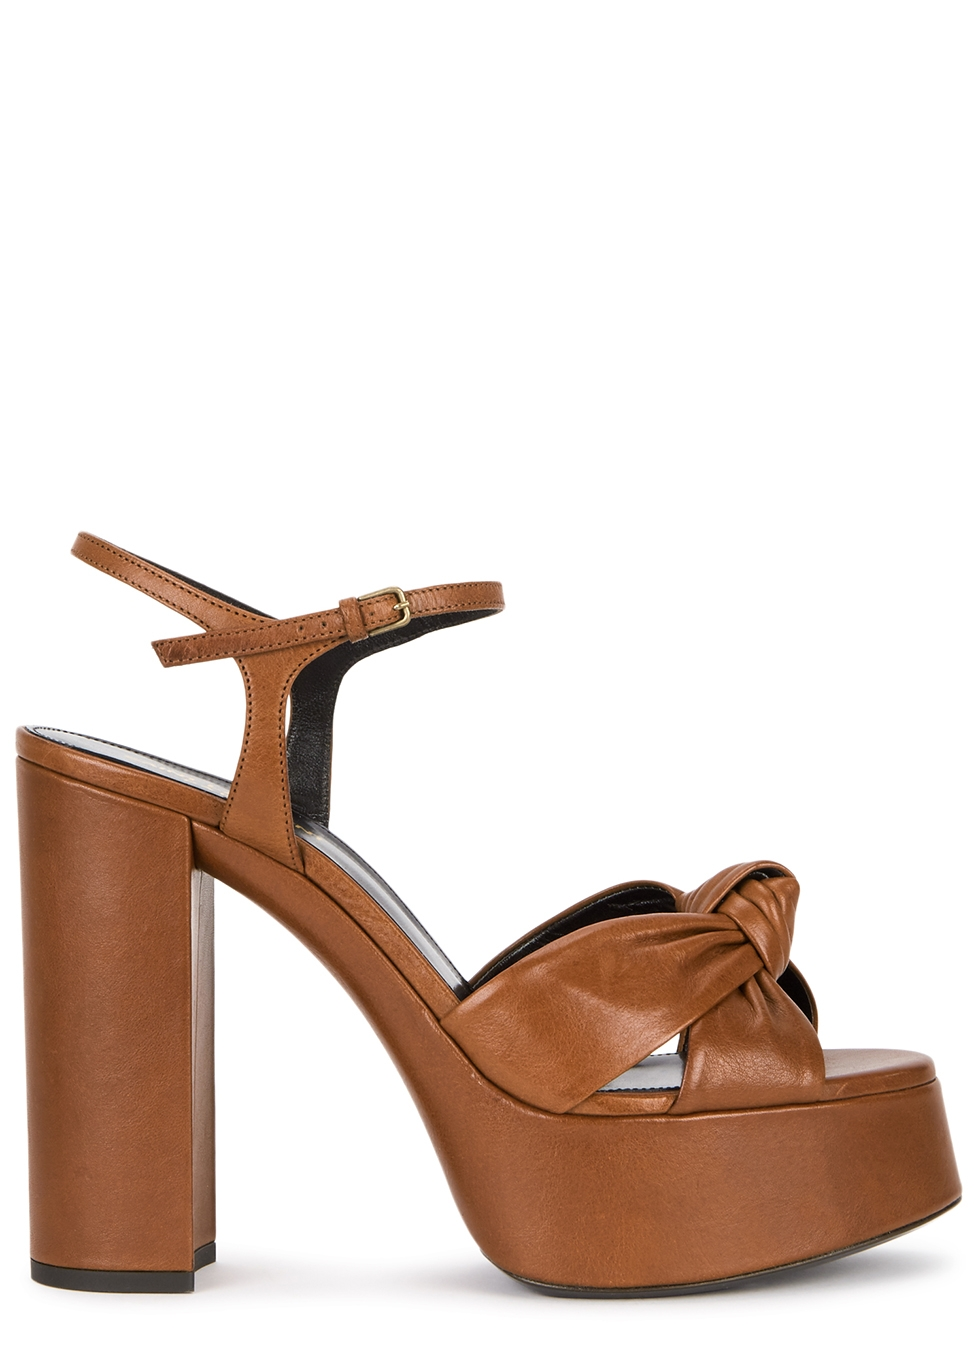 Bianca brown leather platform sandals